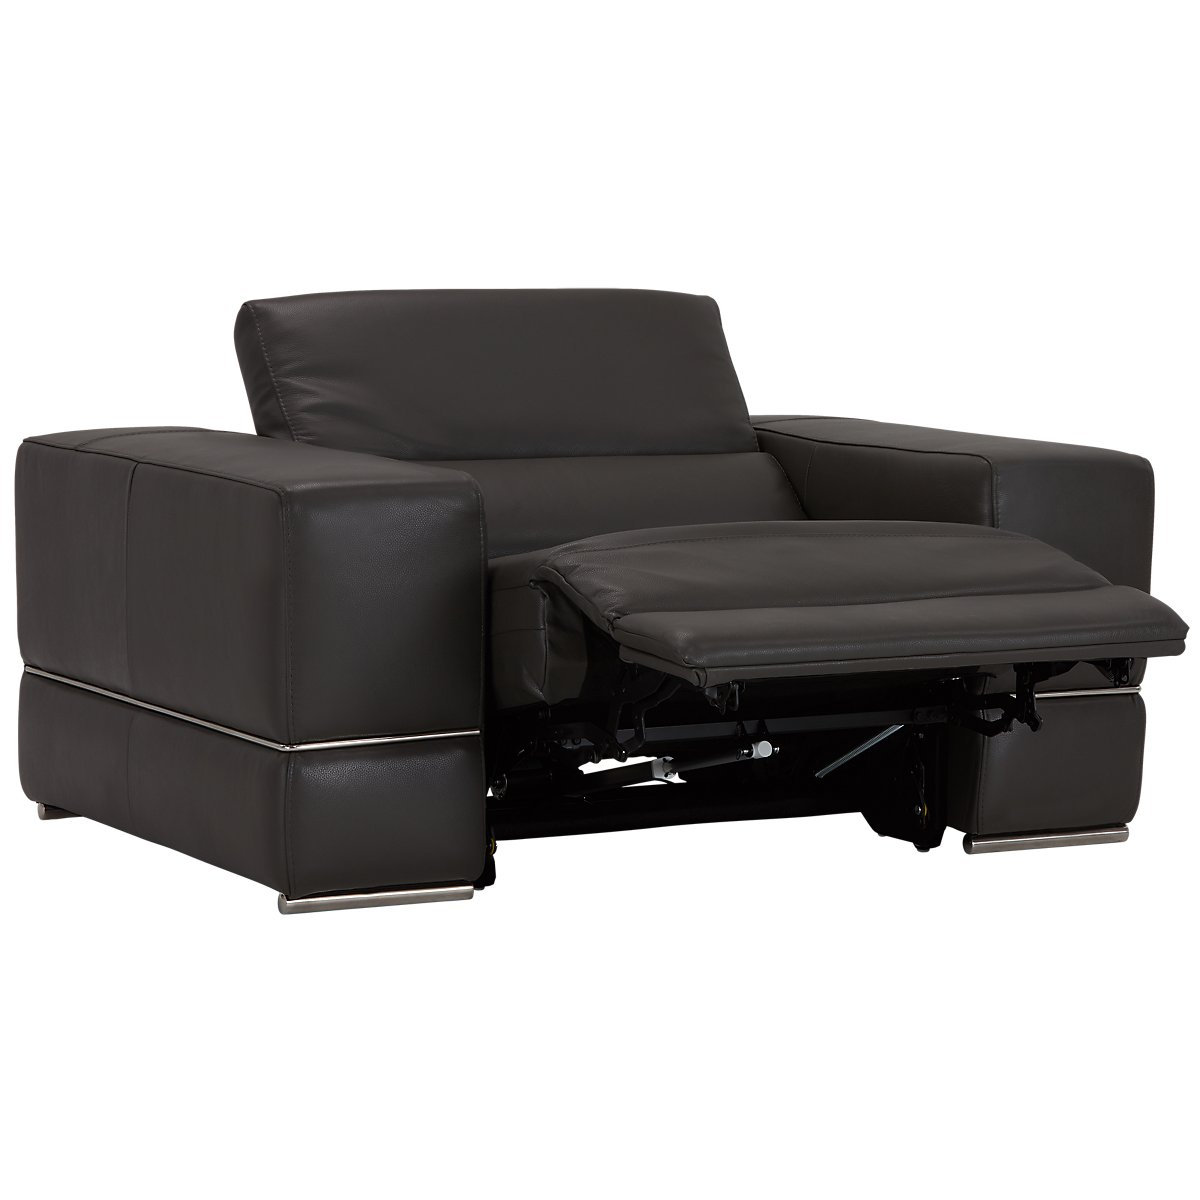 City Furniture Dante Gray Leather Power Reclining Living Room